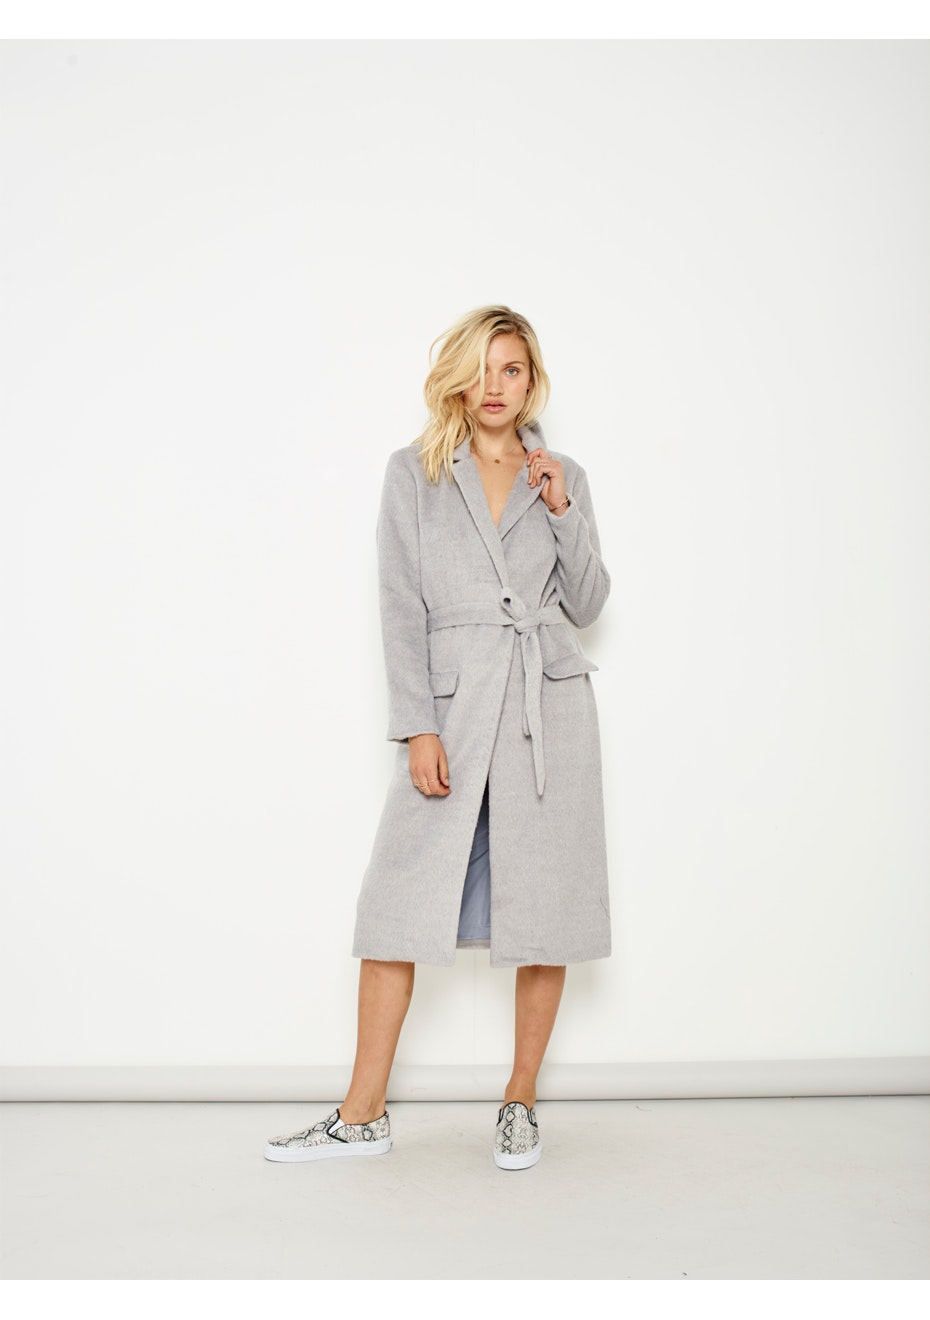 MINKPINK - In The Zone Duster Coat - Grey